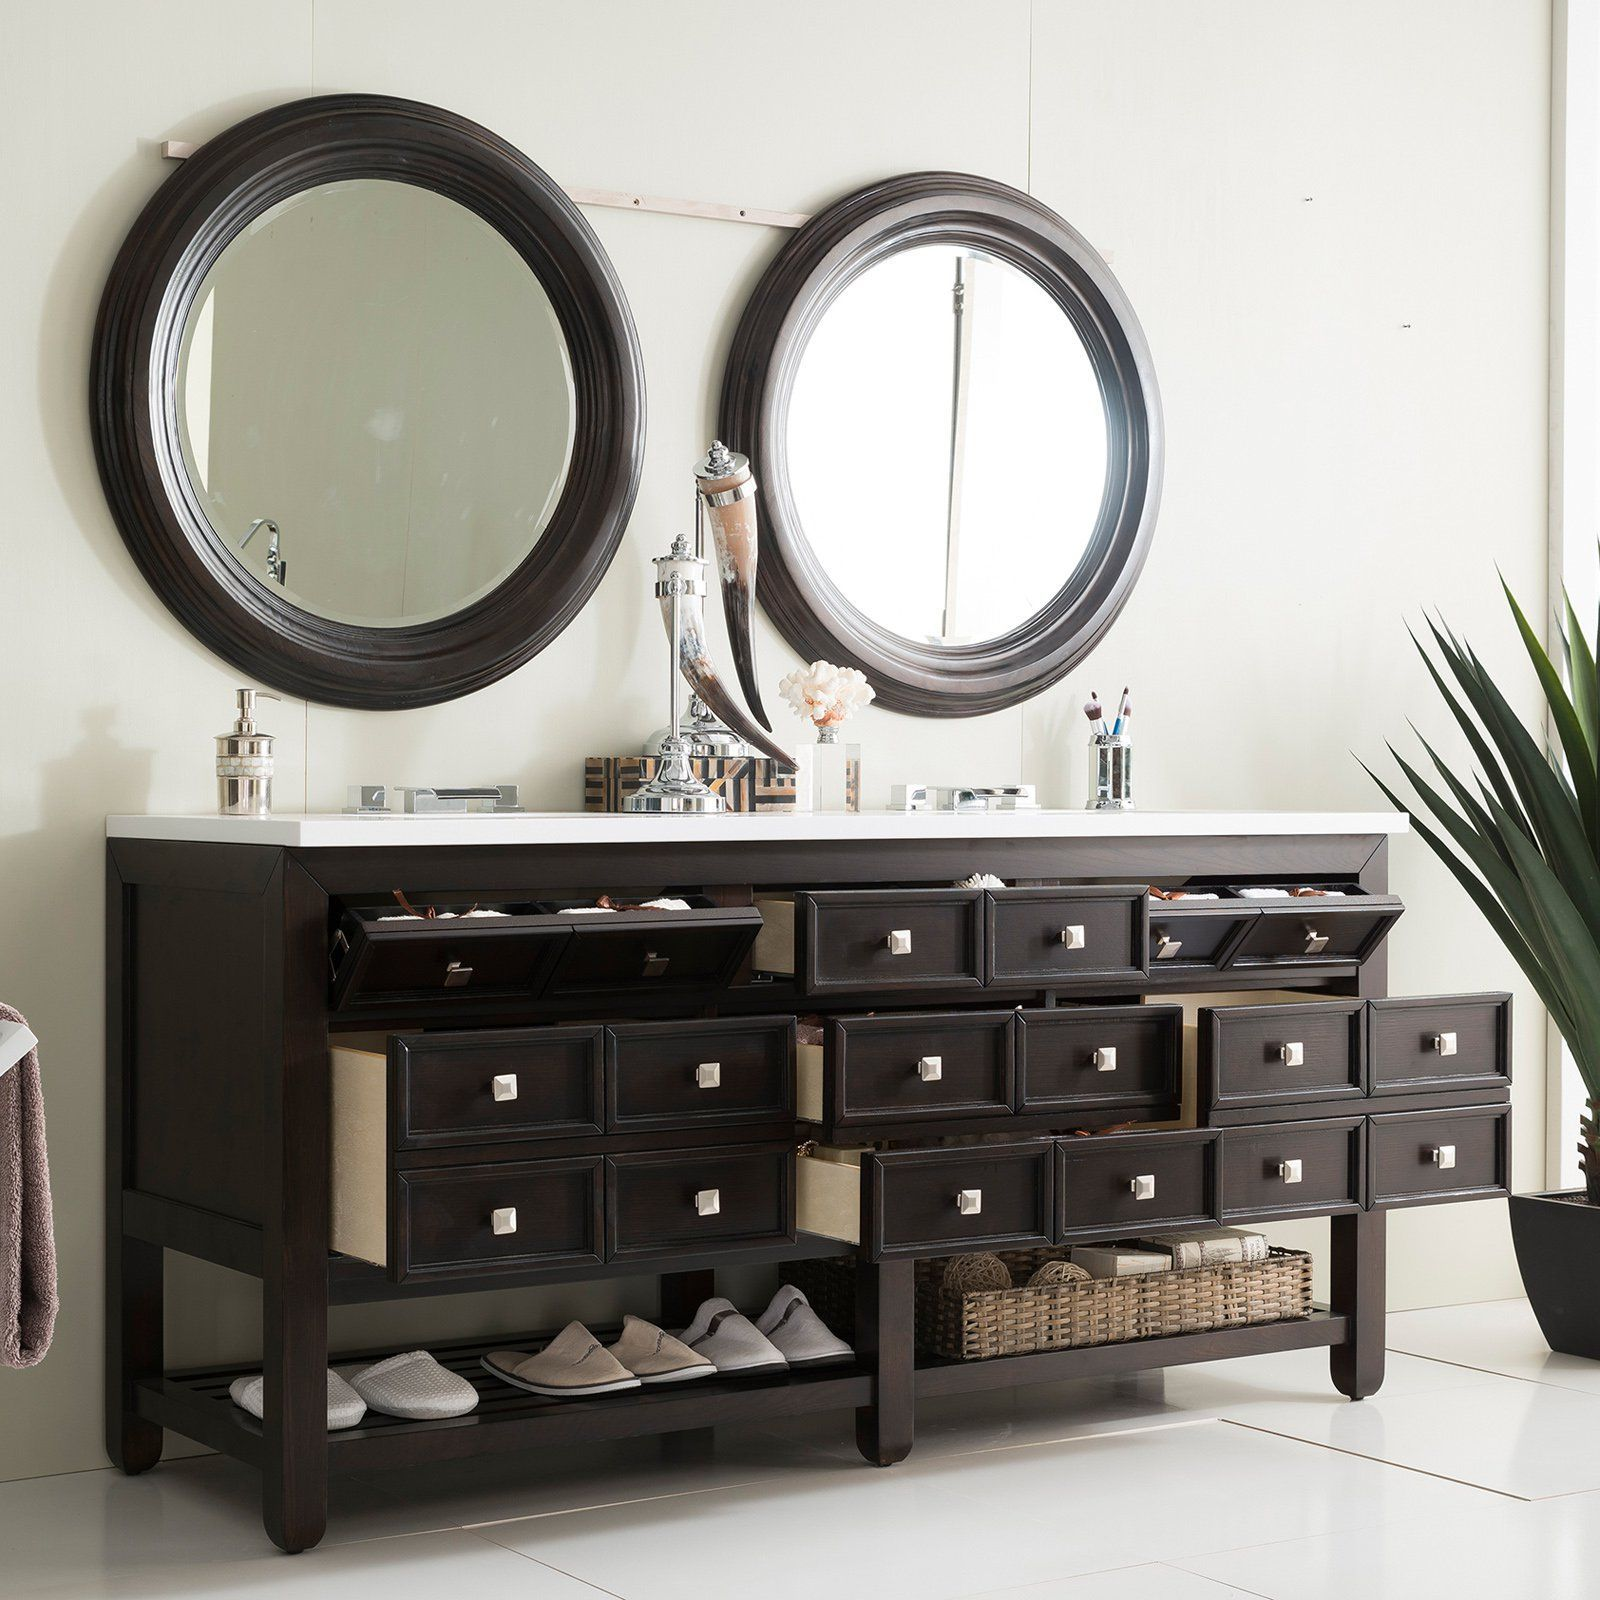 James Martin Furniture Victoria 69 In. Double Vanity   Get That Apothecary  Look In Your Master Bath With The James Martin Furniture Victoria 69 In.